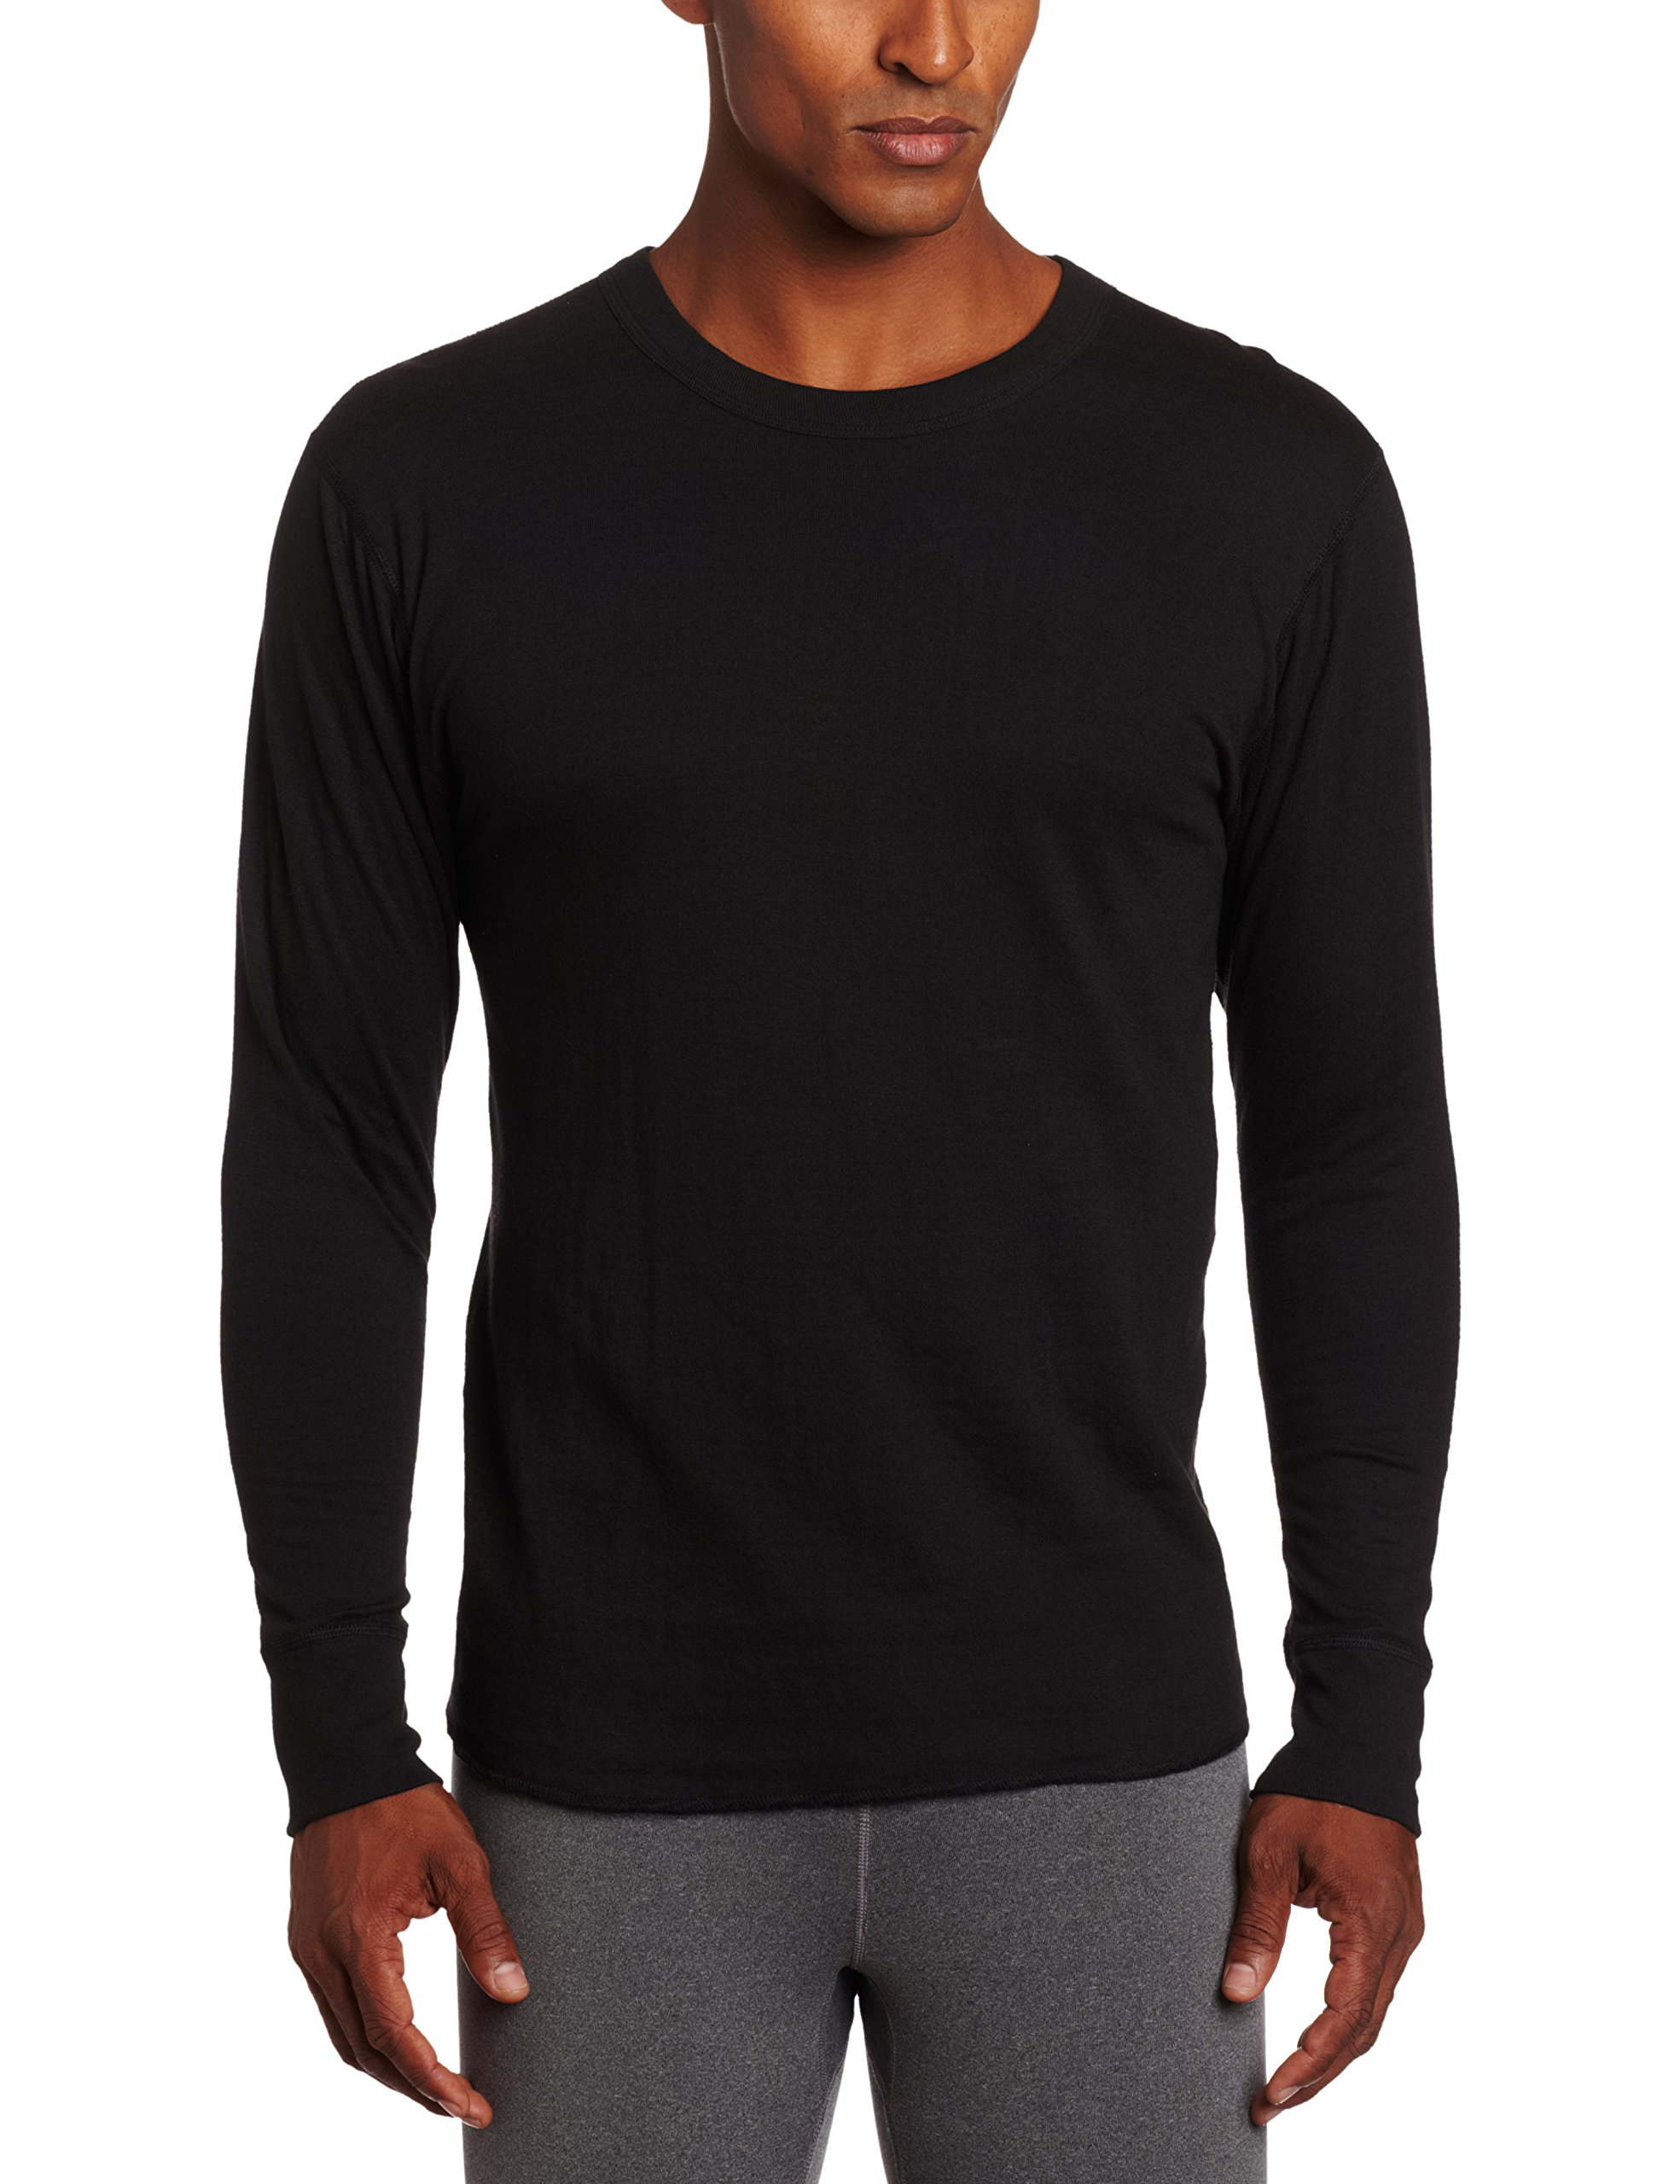 Duofold Men's Mid Weight Wicking Crew Neck Top, Black, Large by Duofold